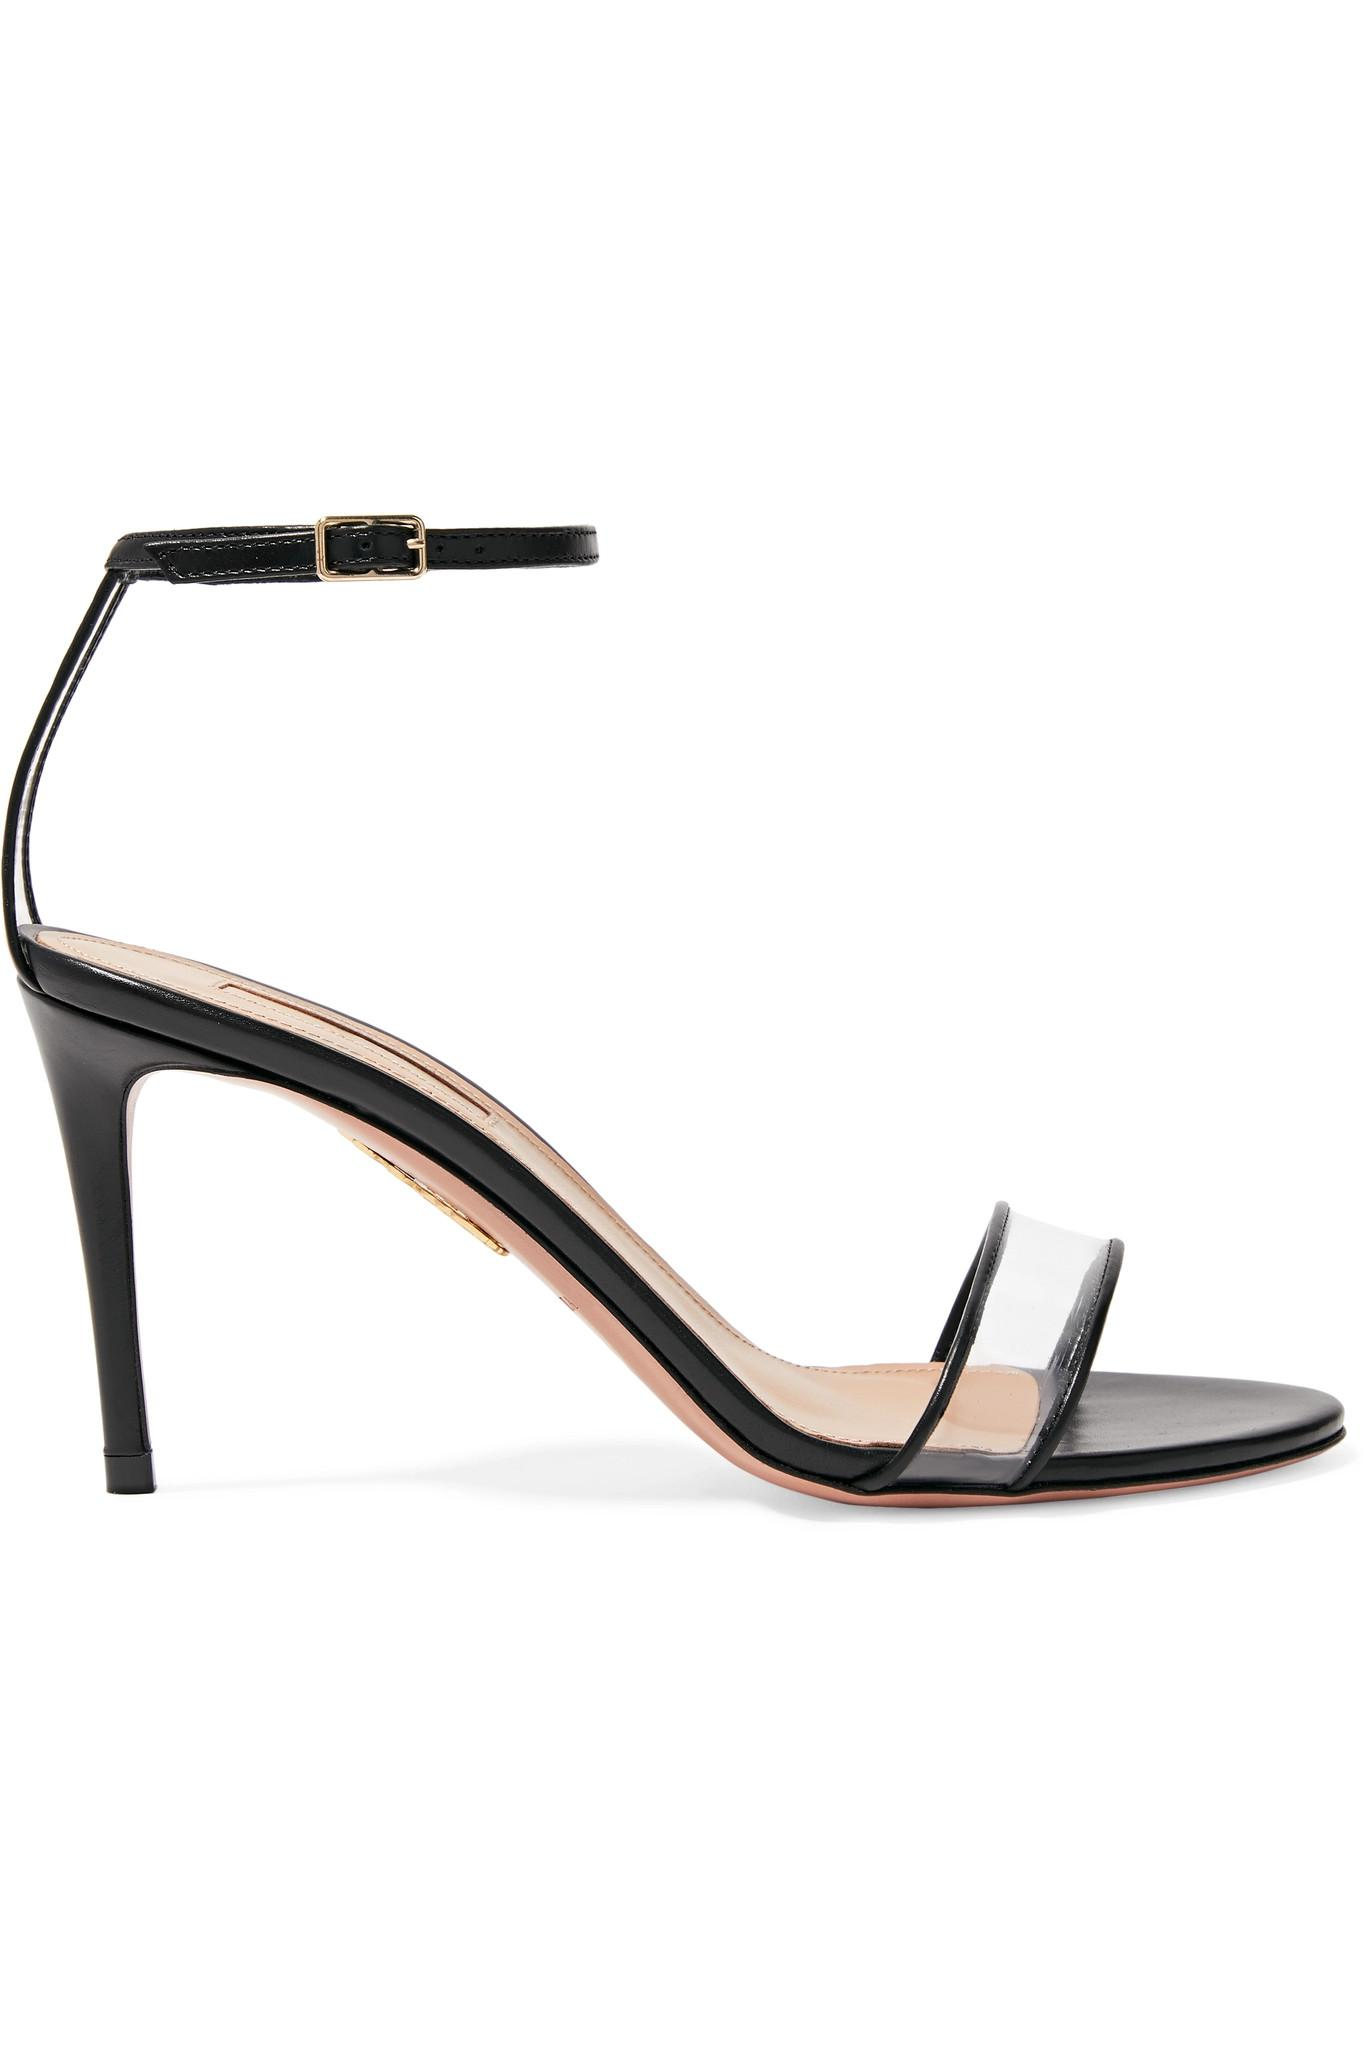 f6ba47c0b10 Lyst - Aquazzura Minimalist 85 Leather And Pvc Sandals in Black